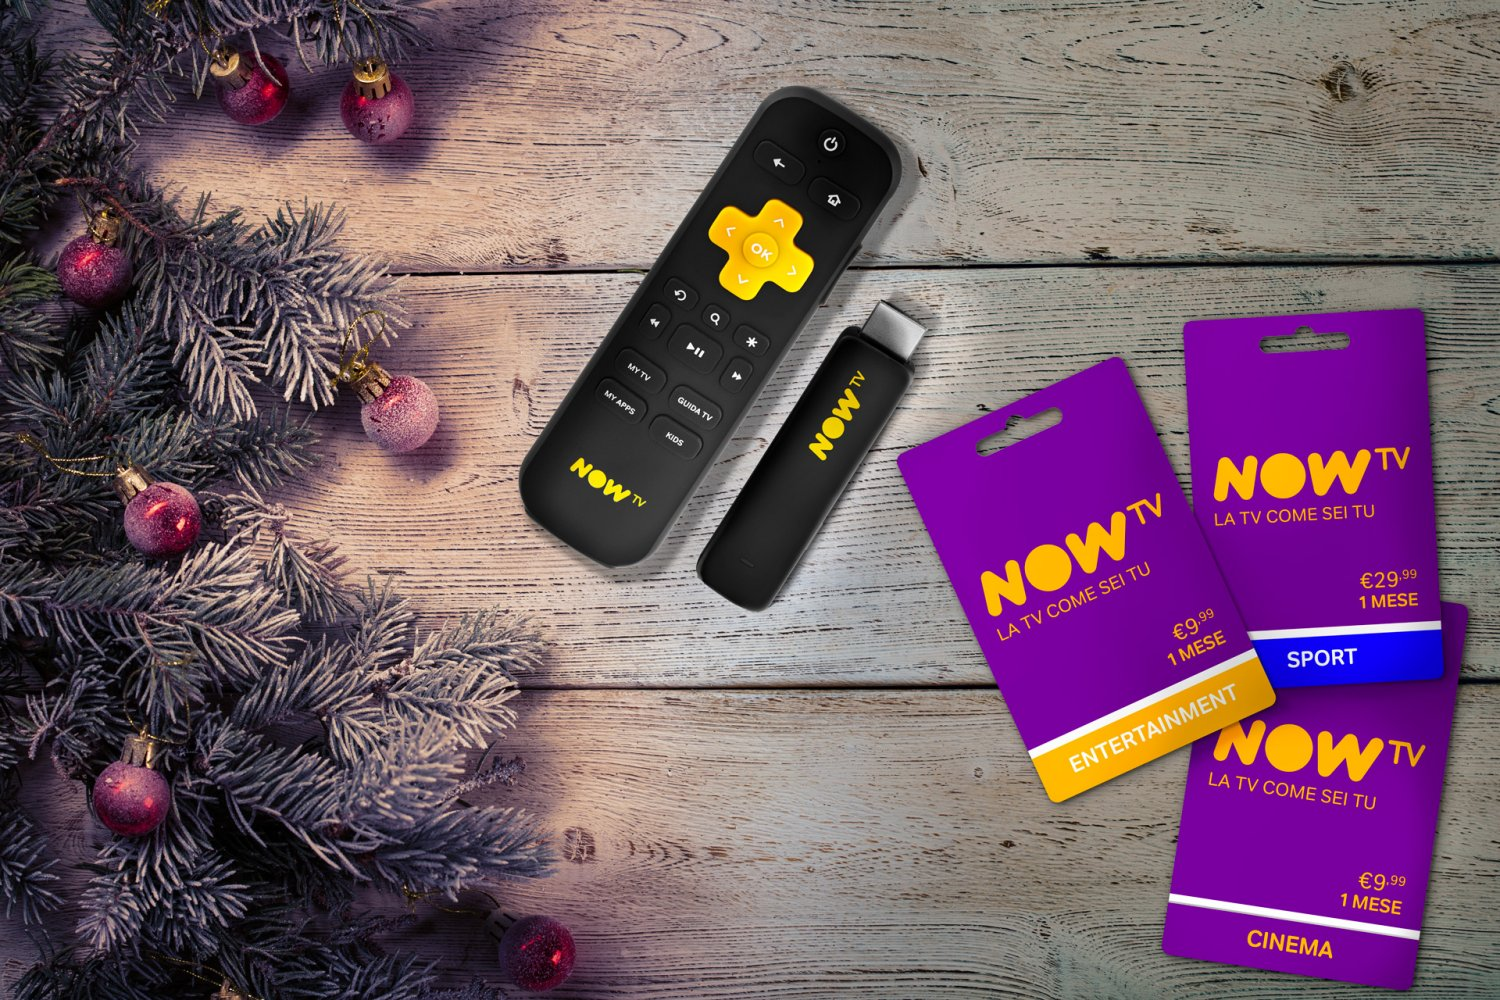 NOW TV Smart Stick e NOW TV Card accendono il Natale!